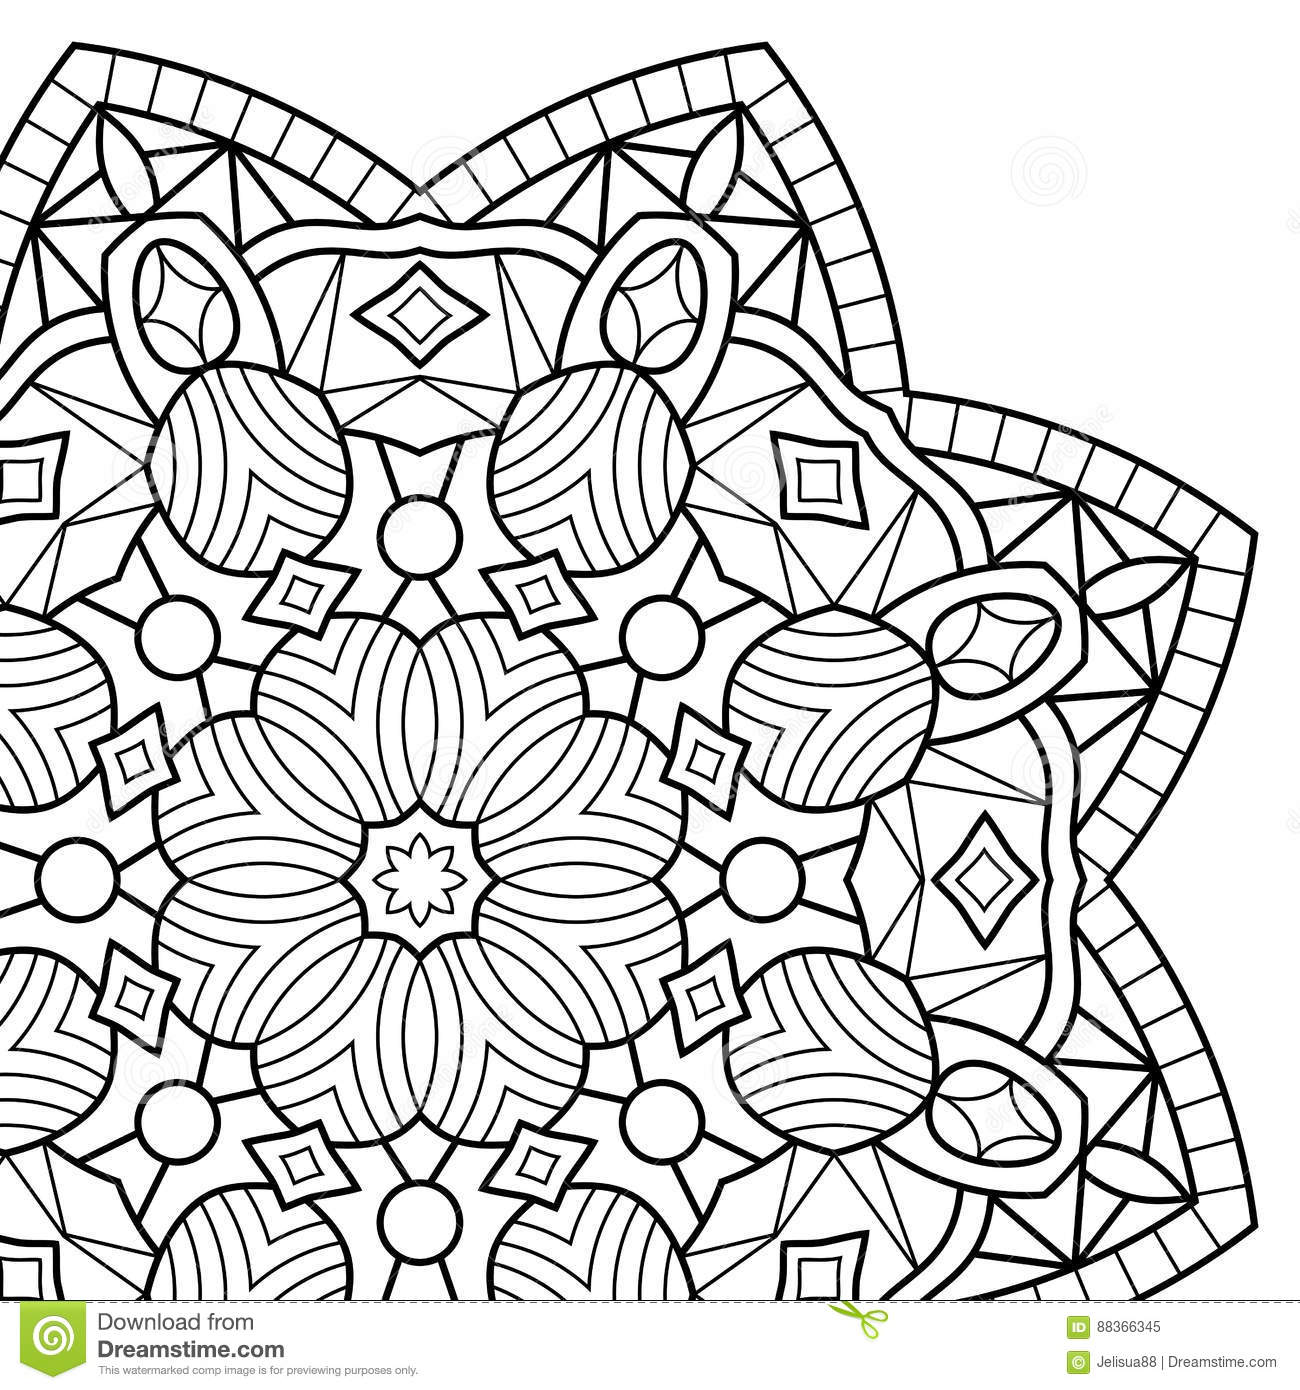 Mandala Coloring Book Pages Indian Antistress Medallion White Background Black Outline Vector Illustration